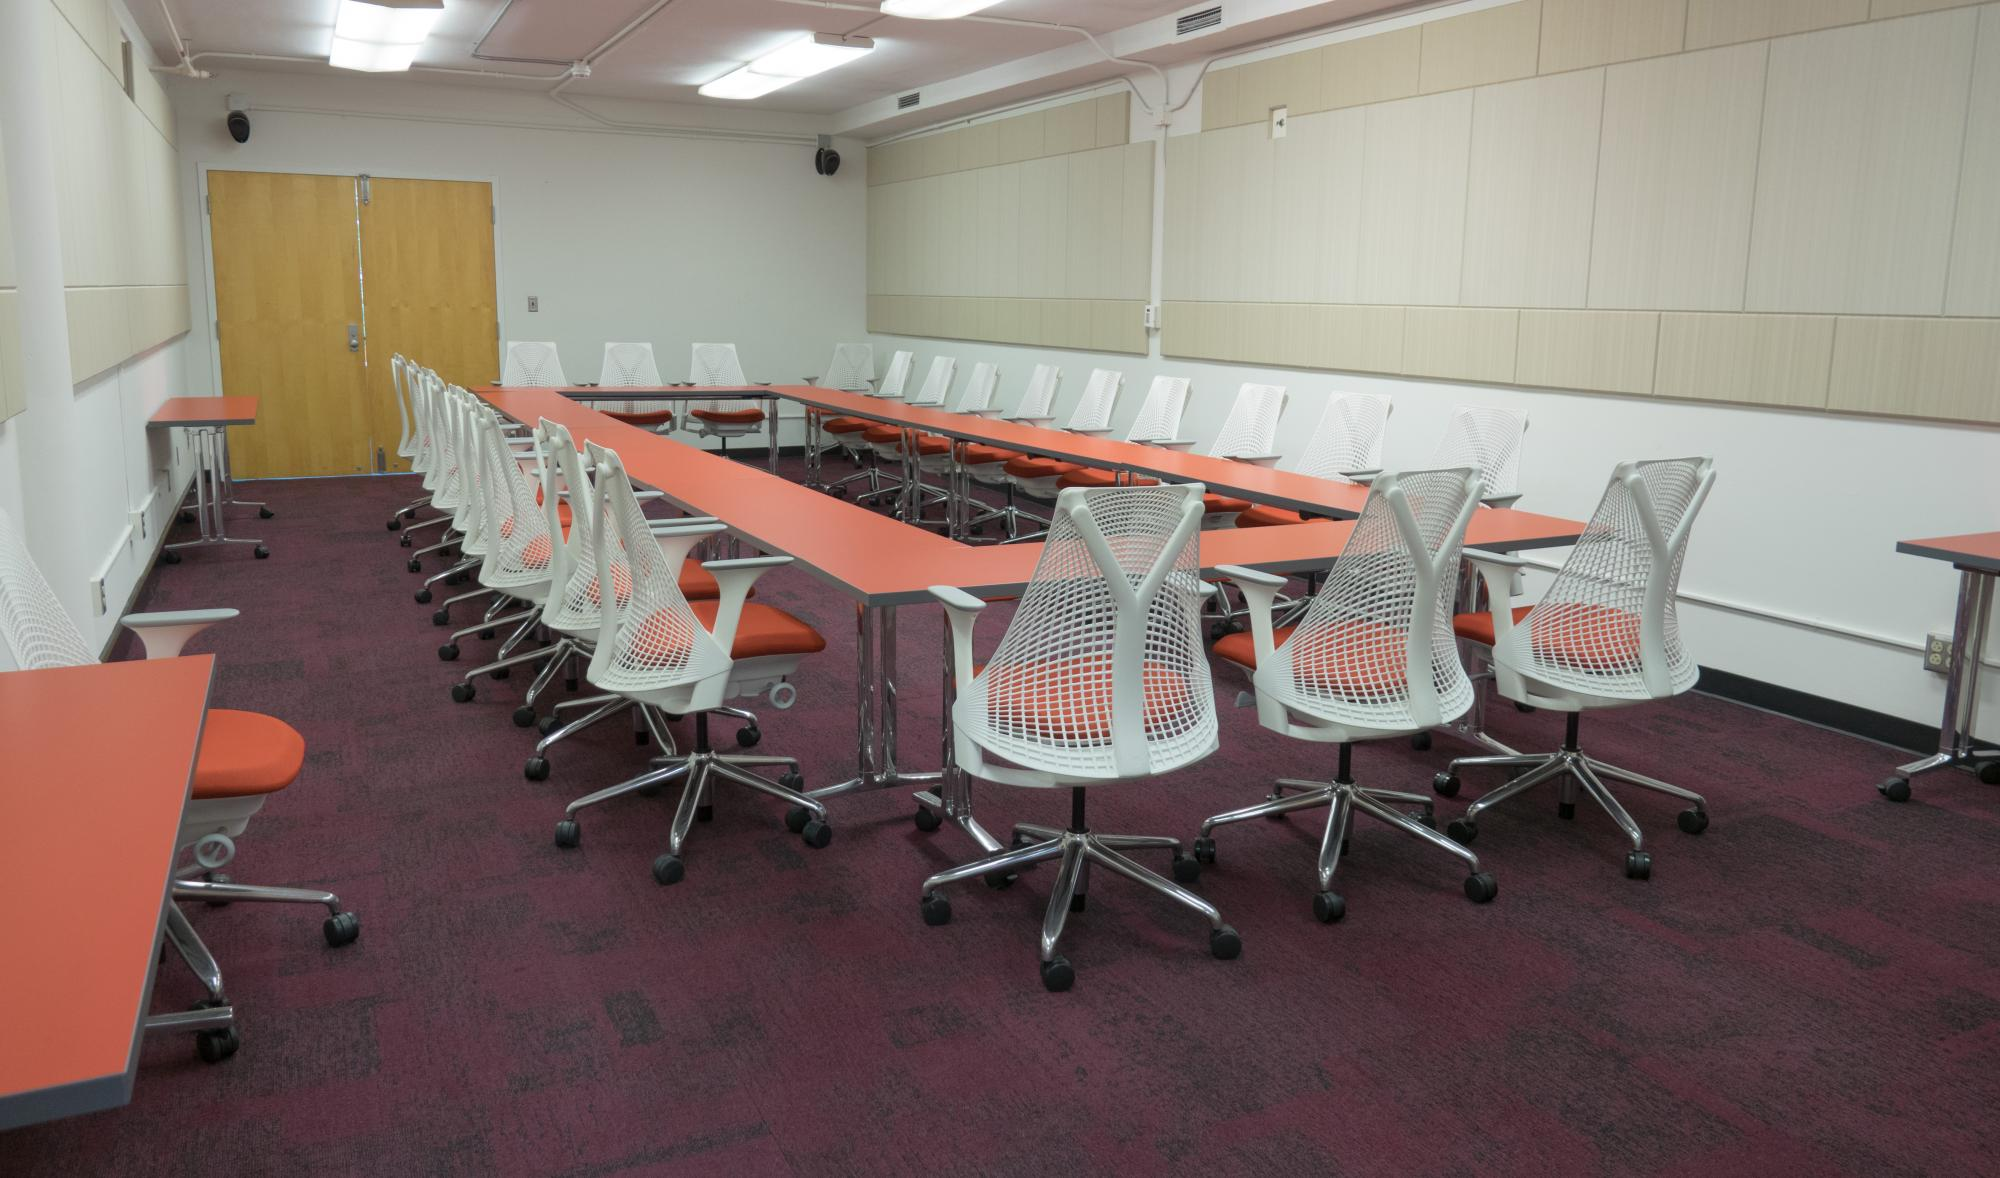 A large seminar room with tables arranged in a circle in the center